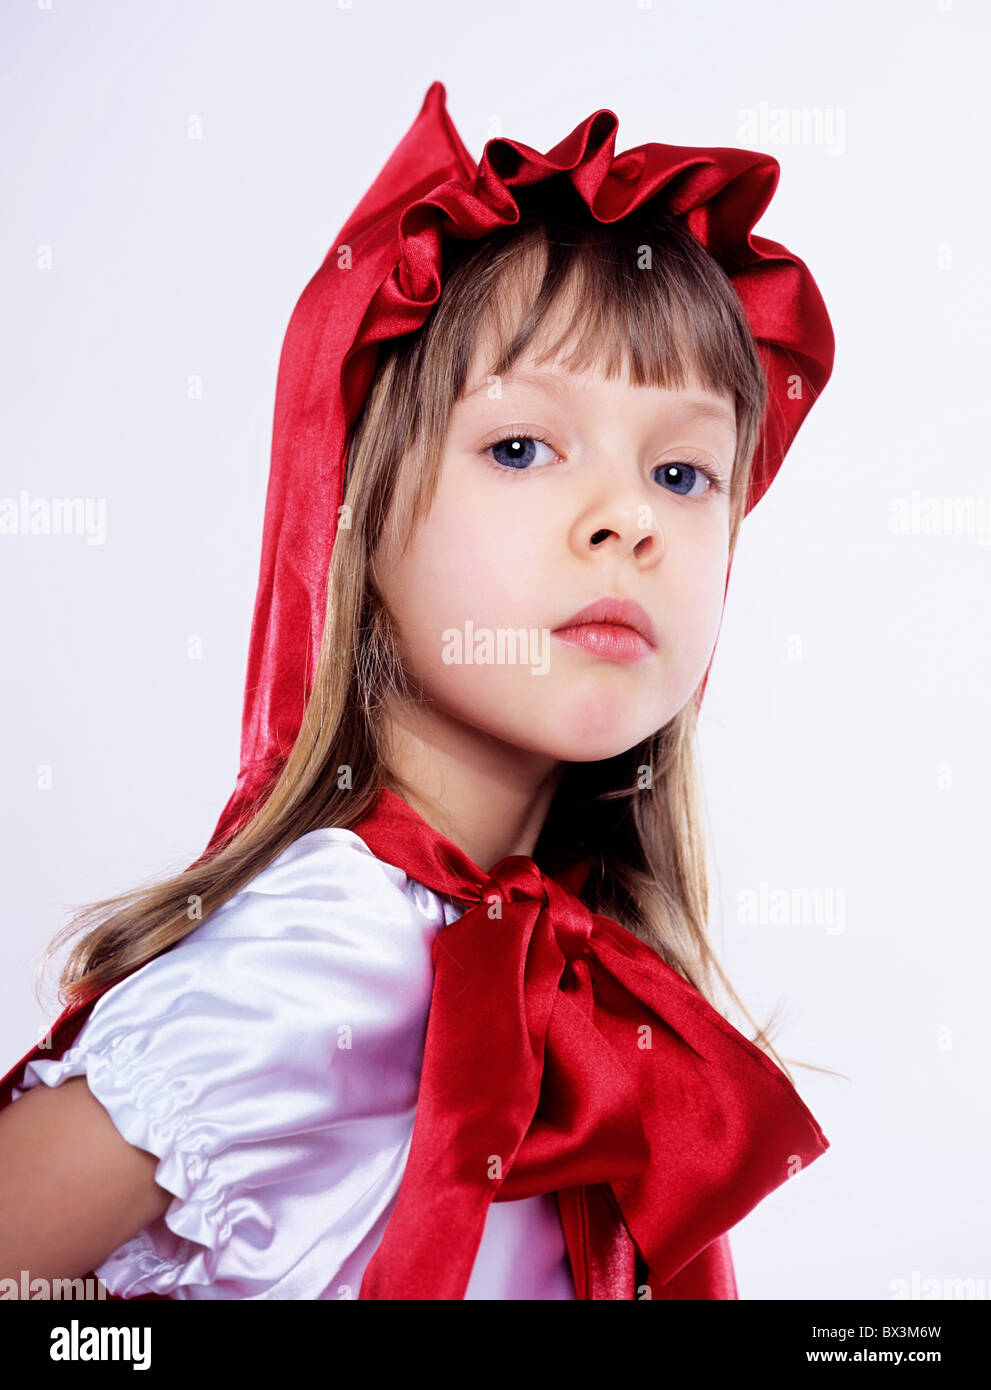 Girl wearing Little Red Riding Hood costume indoors.  sc 1 st  Alamy & Girl wearing Little Red Riding Hood costume indoors Stock Photo ...